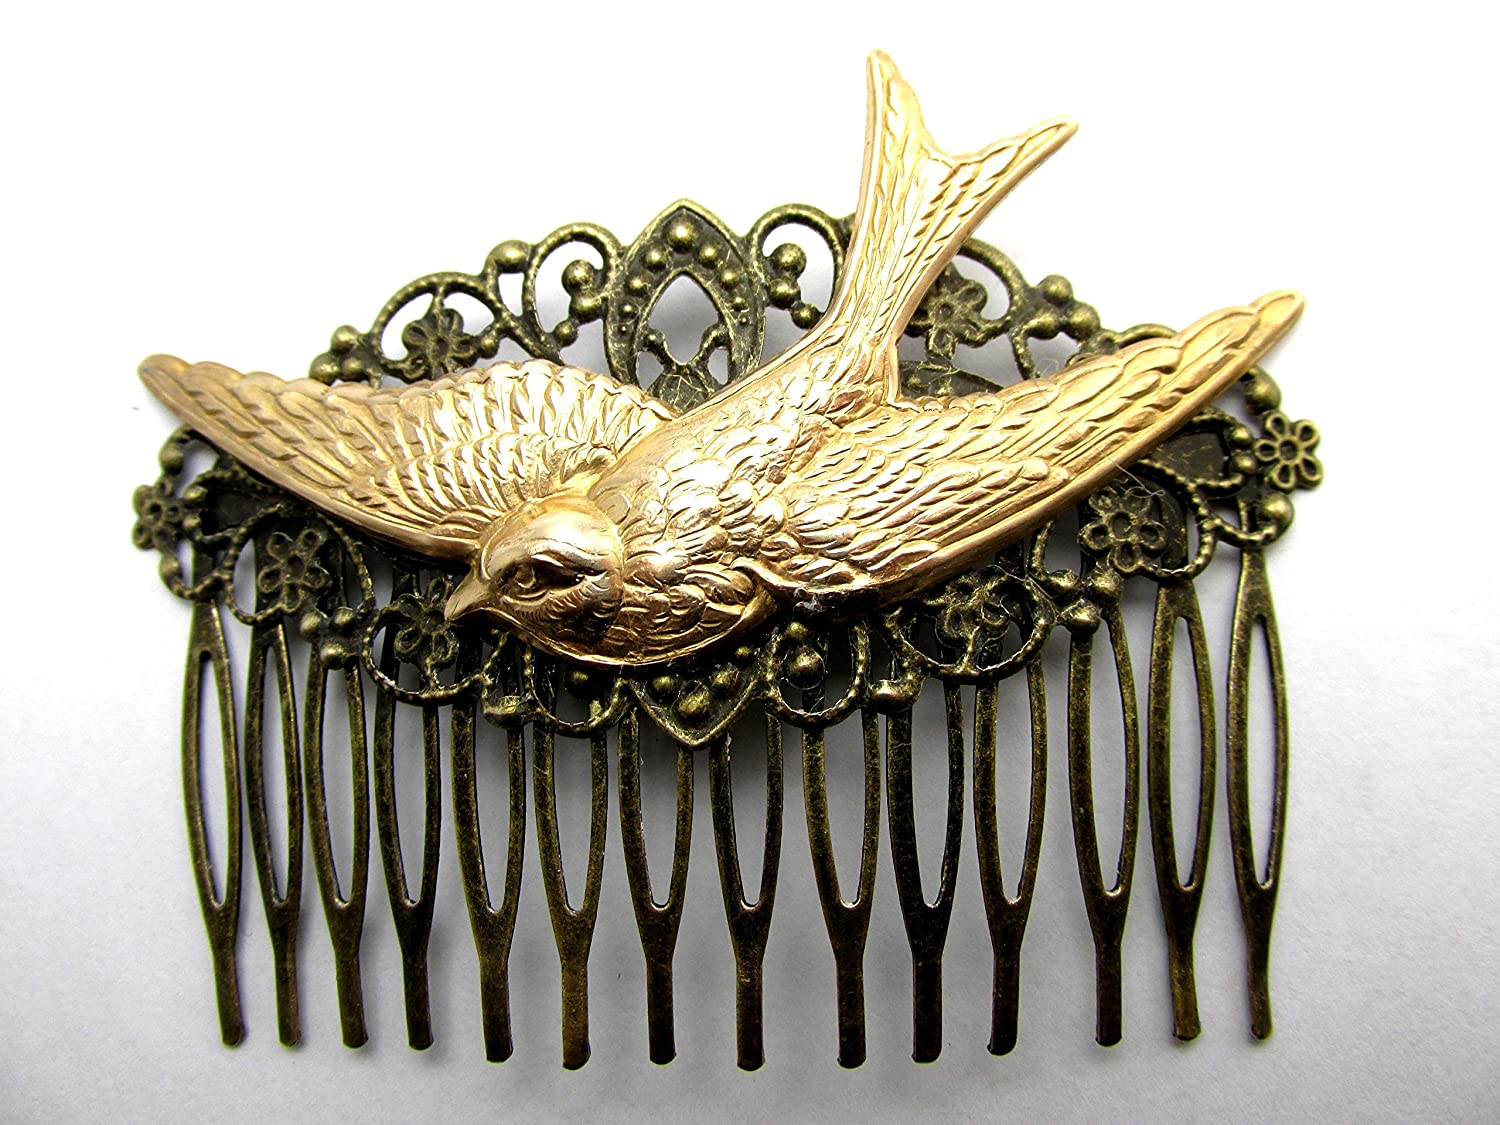 Blue Birds Hair Comb Birds in Flight Hair comb silver hair combs Bridal Hair Accessories Silver Decorative comb MyElegantThings